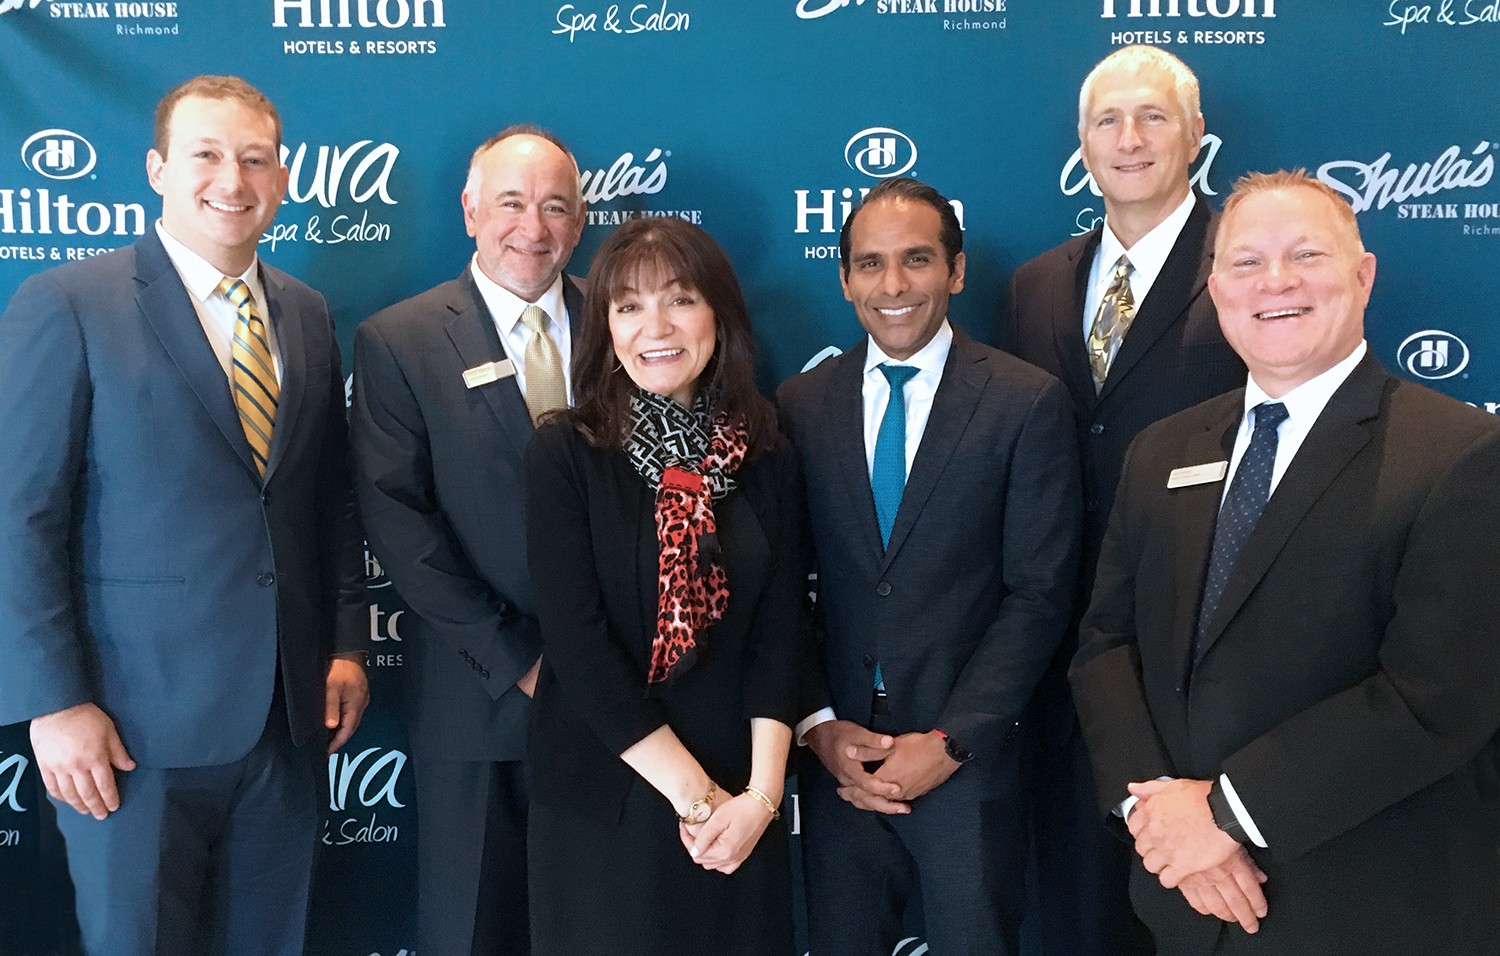 Hilton Richmond Hotel & Spa / Short Pump Recognized for Continued Excellence